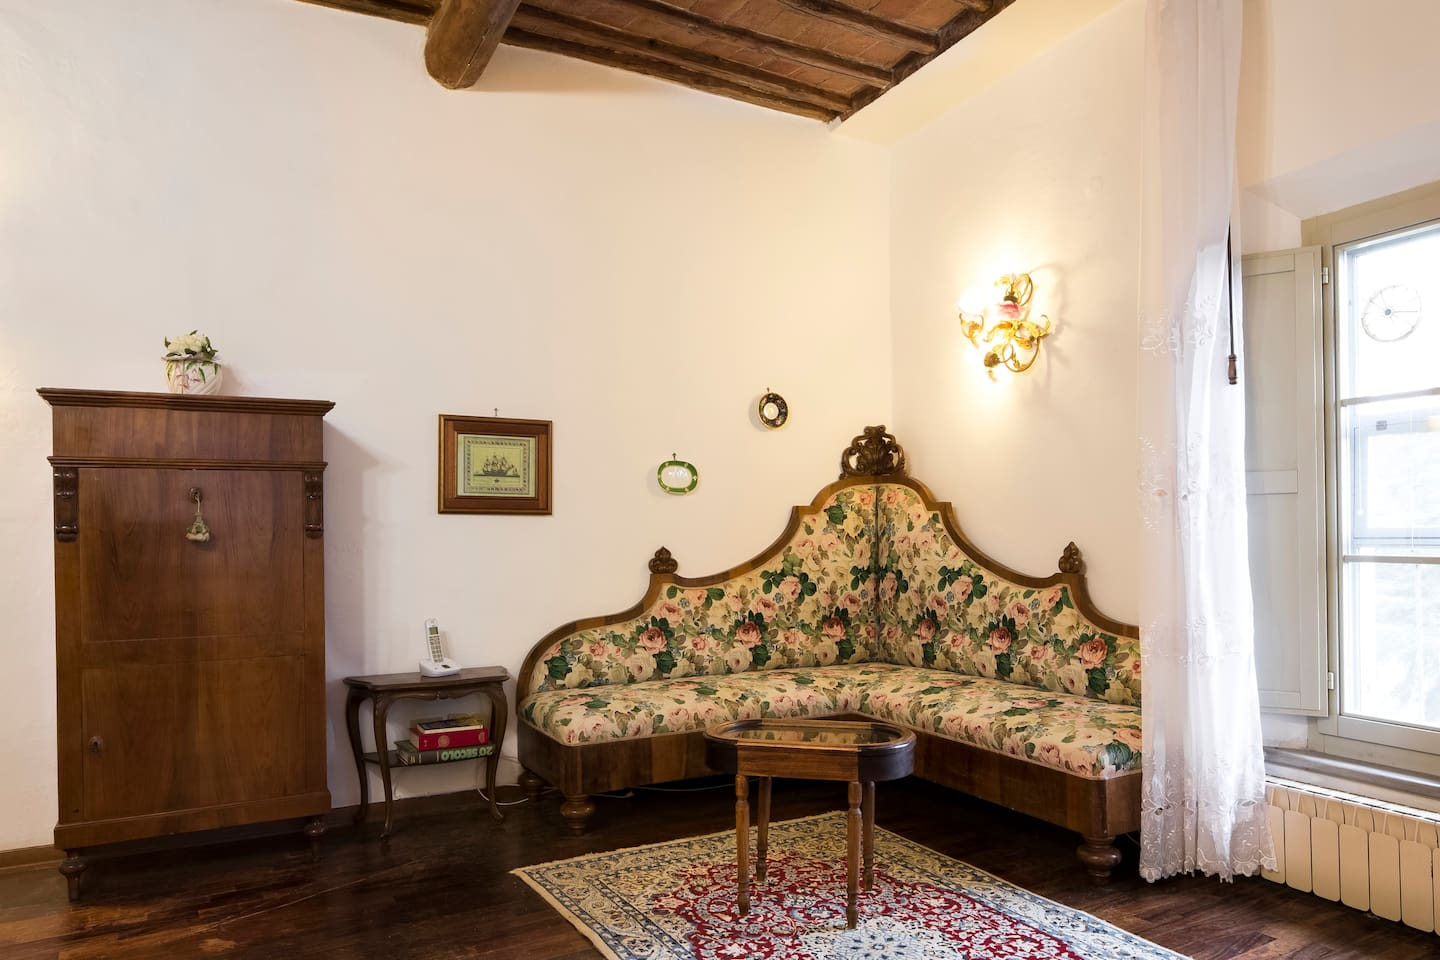 Sitting-room with typical Tuscan furniture